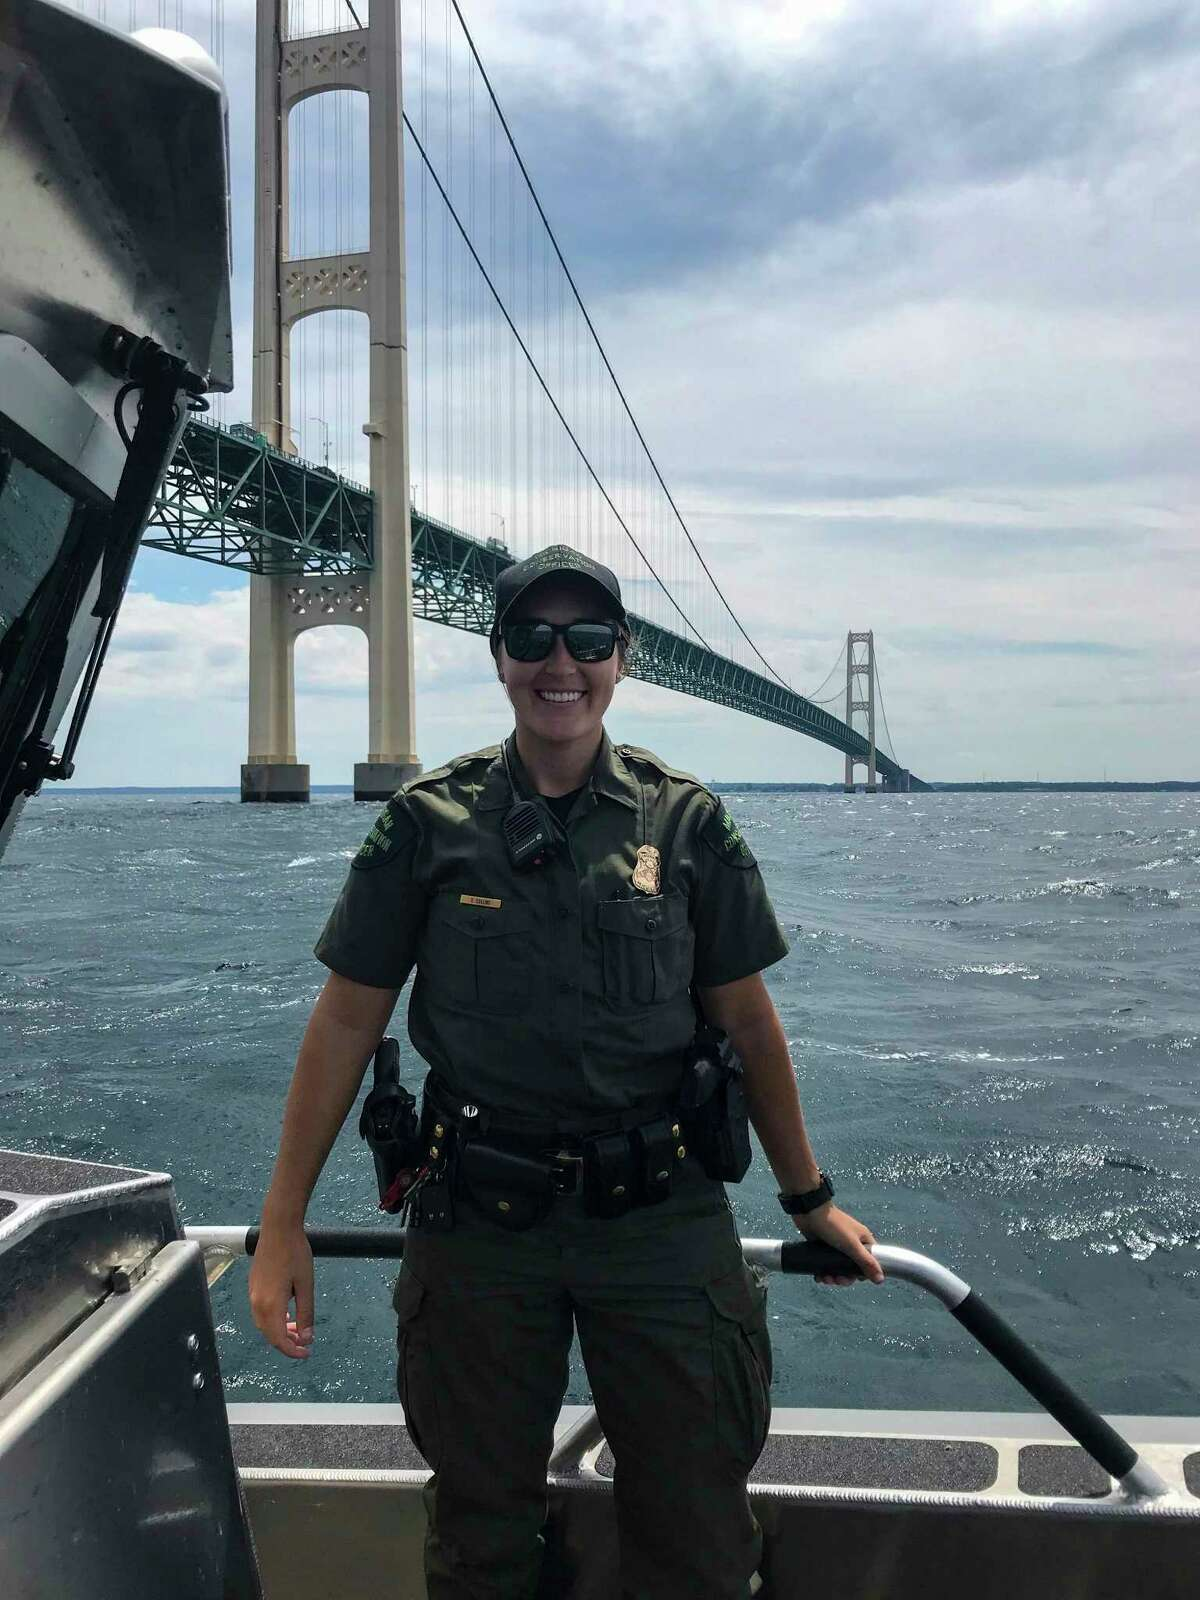 Michigan Conservation Officer Sidney Collins conducts marine patrol on the Straits of Mackinaw. Conservation officers patrol the Great Lakes for marine safety and to monitor the commercial fishing industry. (Courtesy photo/Michigan Department of Natural Resources)